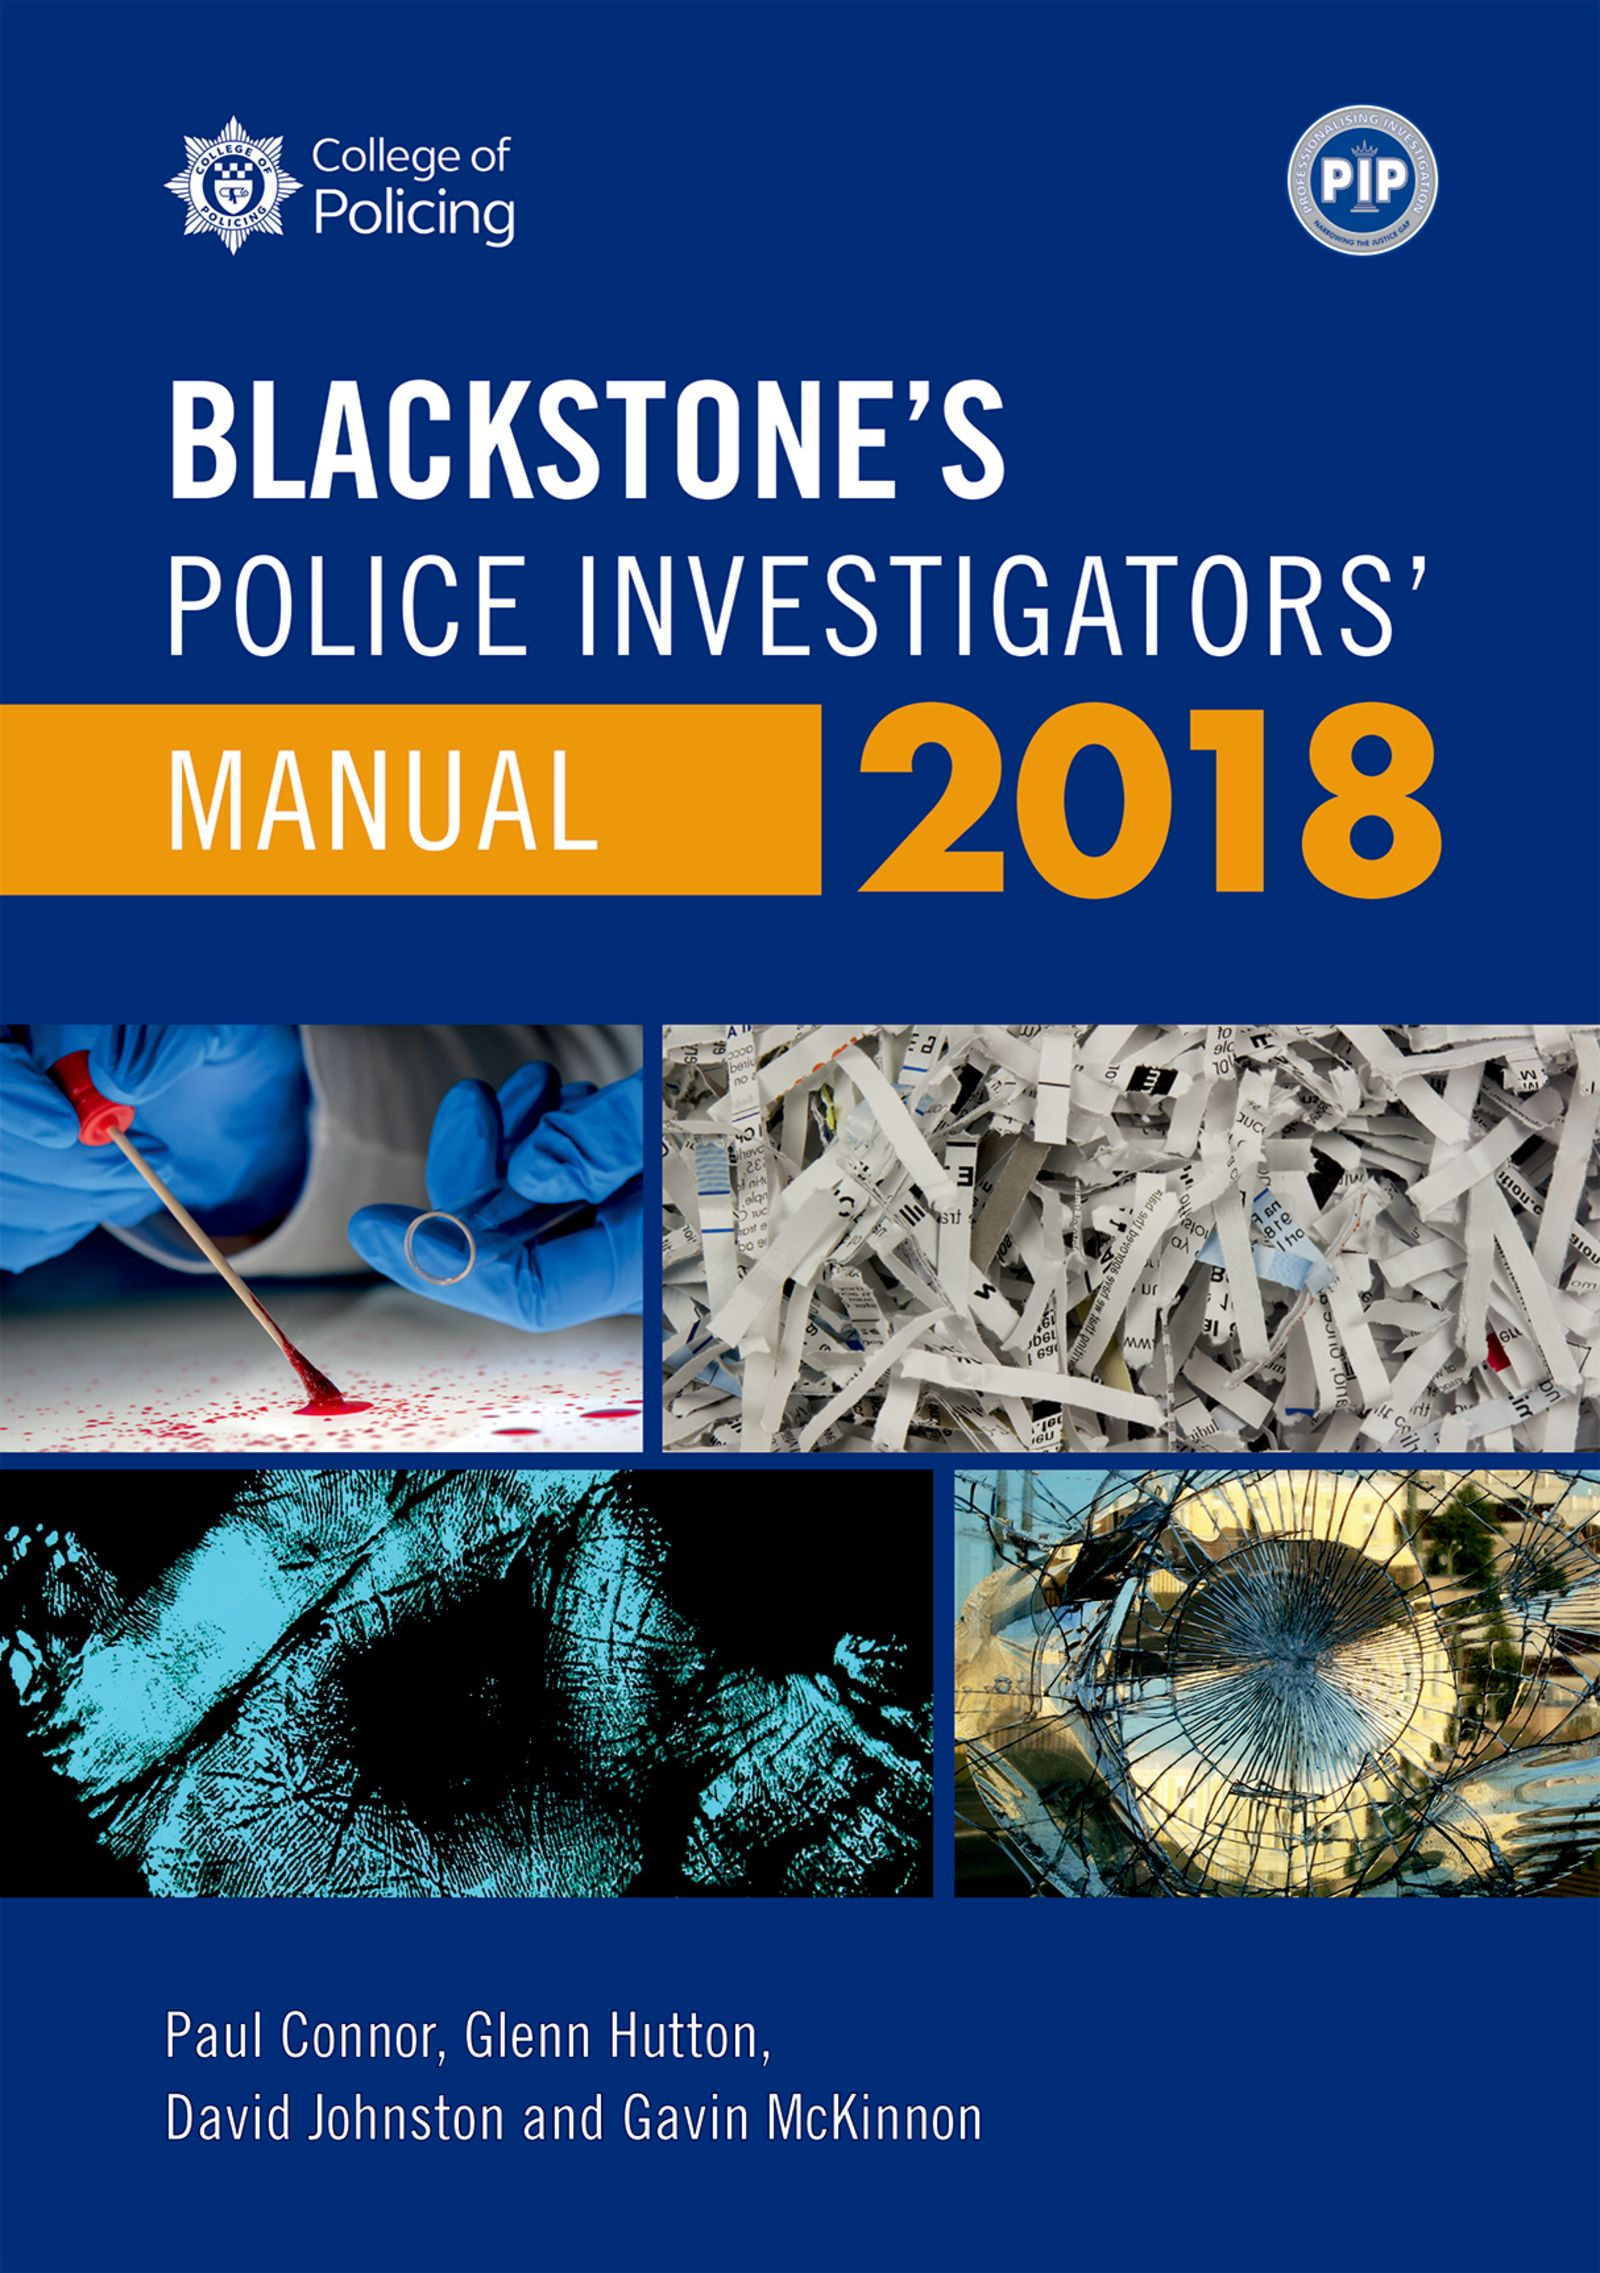 Blackstone's Police Investigators' Manual 2018$